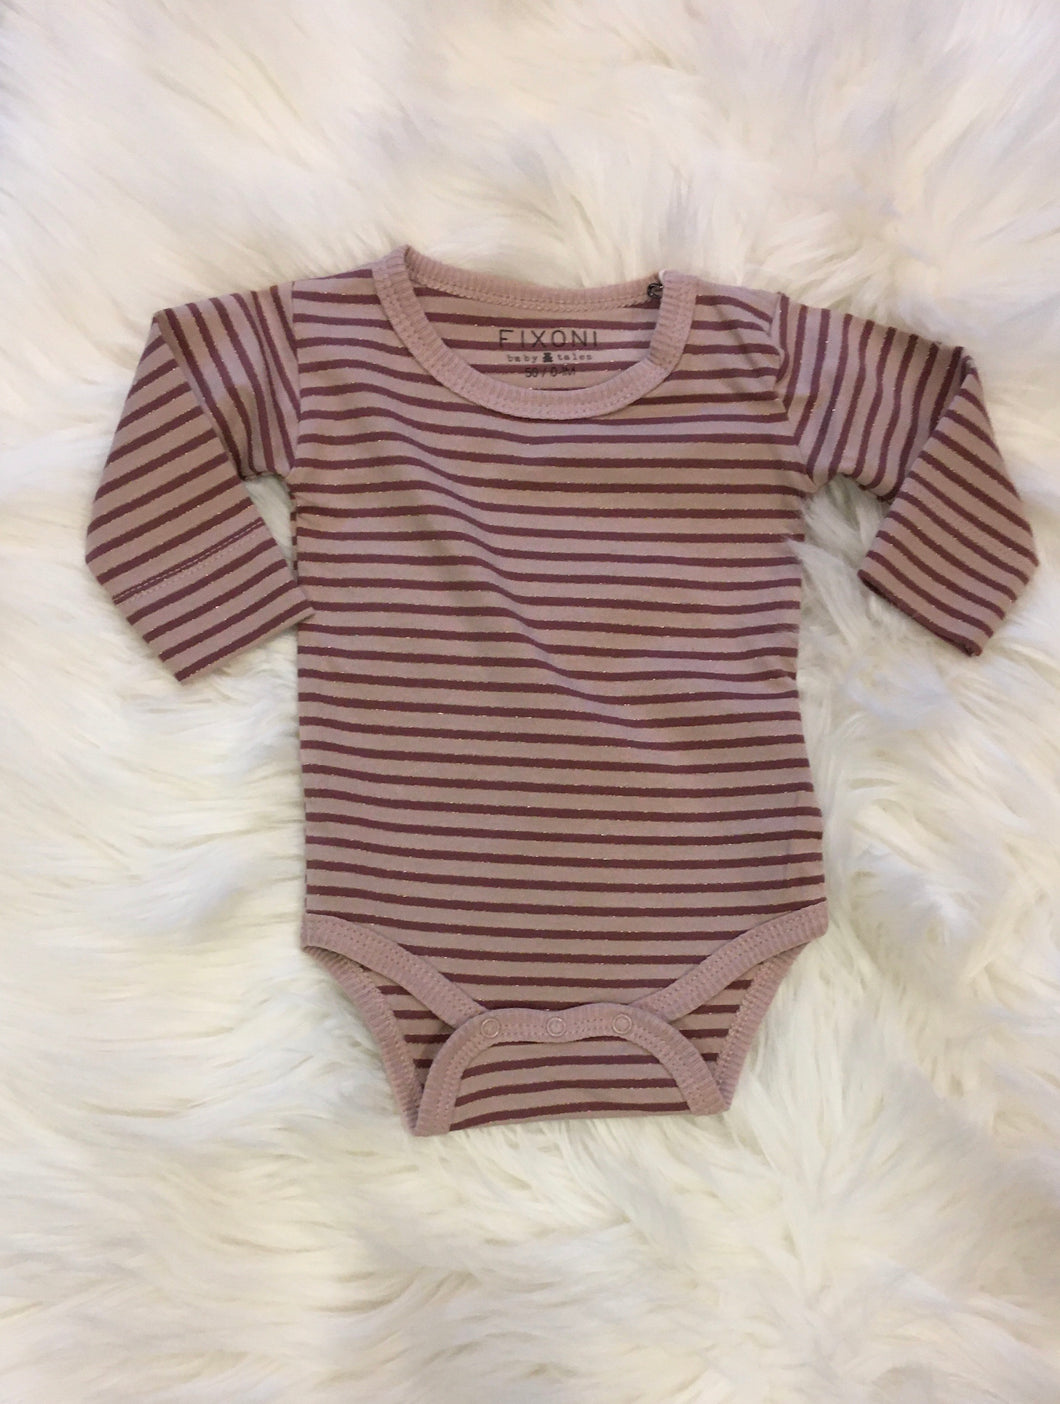 Fixoni Plum Gold Lurex Striped Baby Girl Onesie